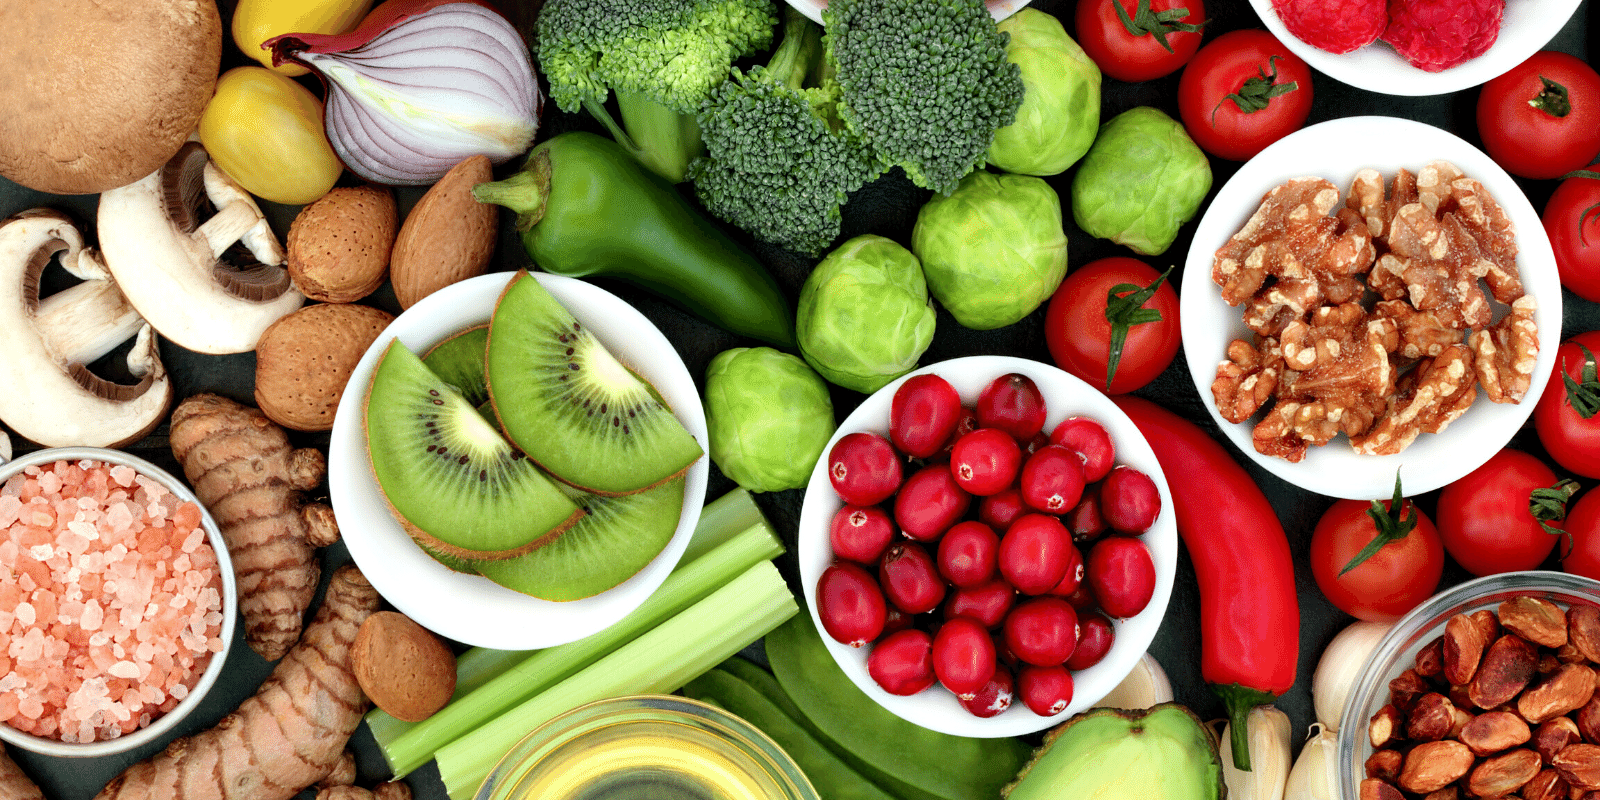 Natural vs Organic: What's the Difference?